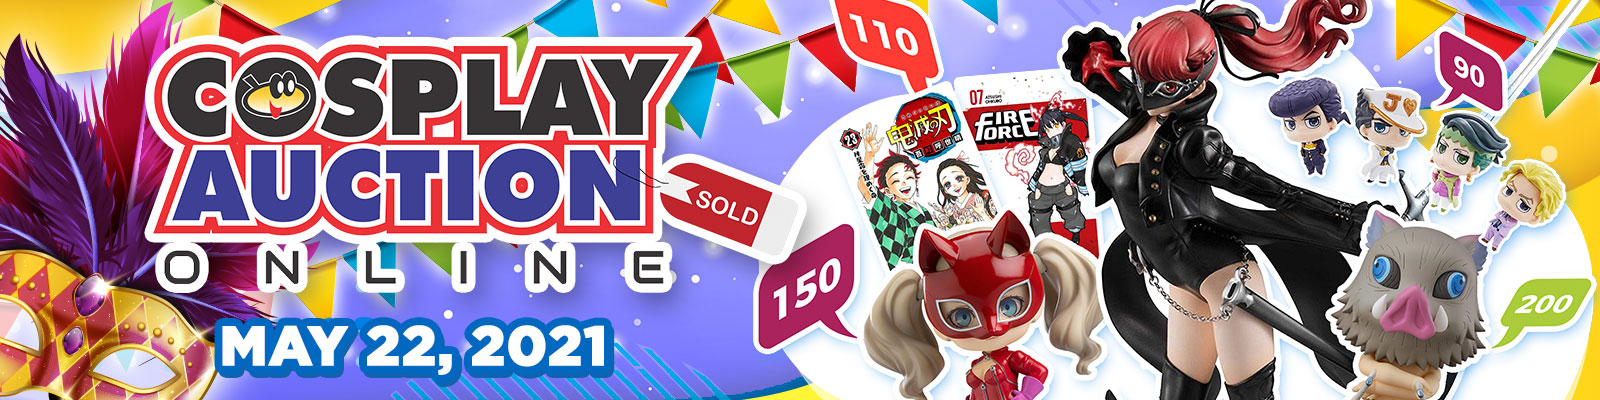 Cosplay Auction Online Vol. 6